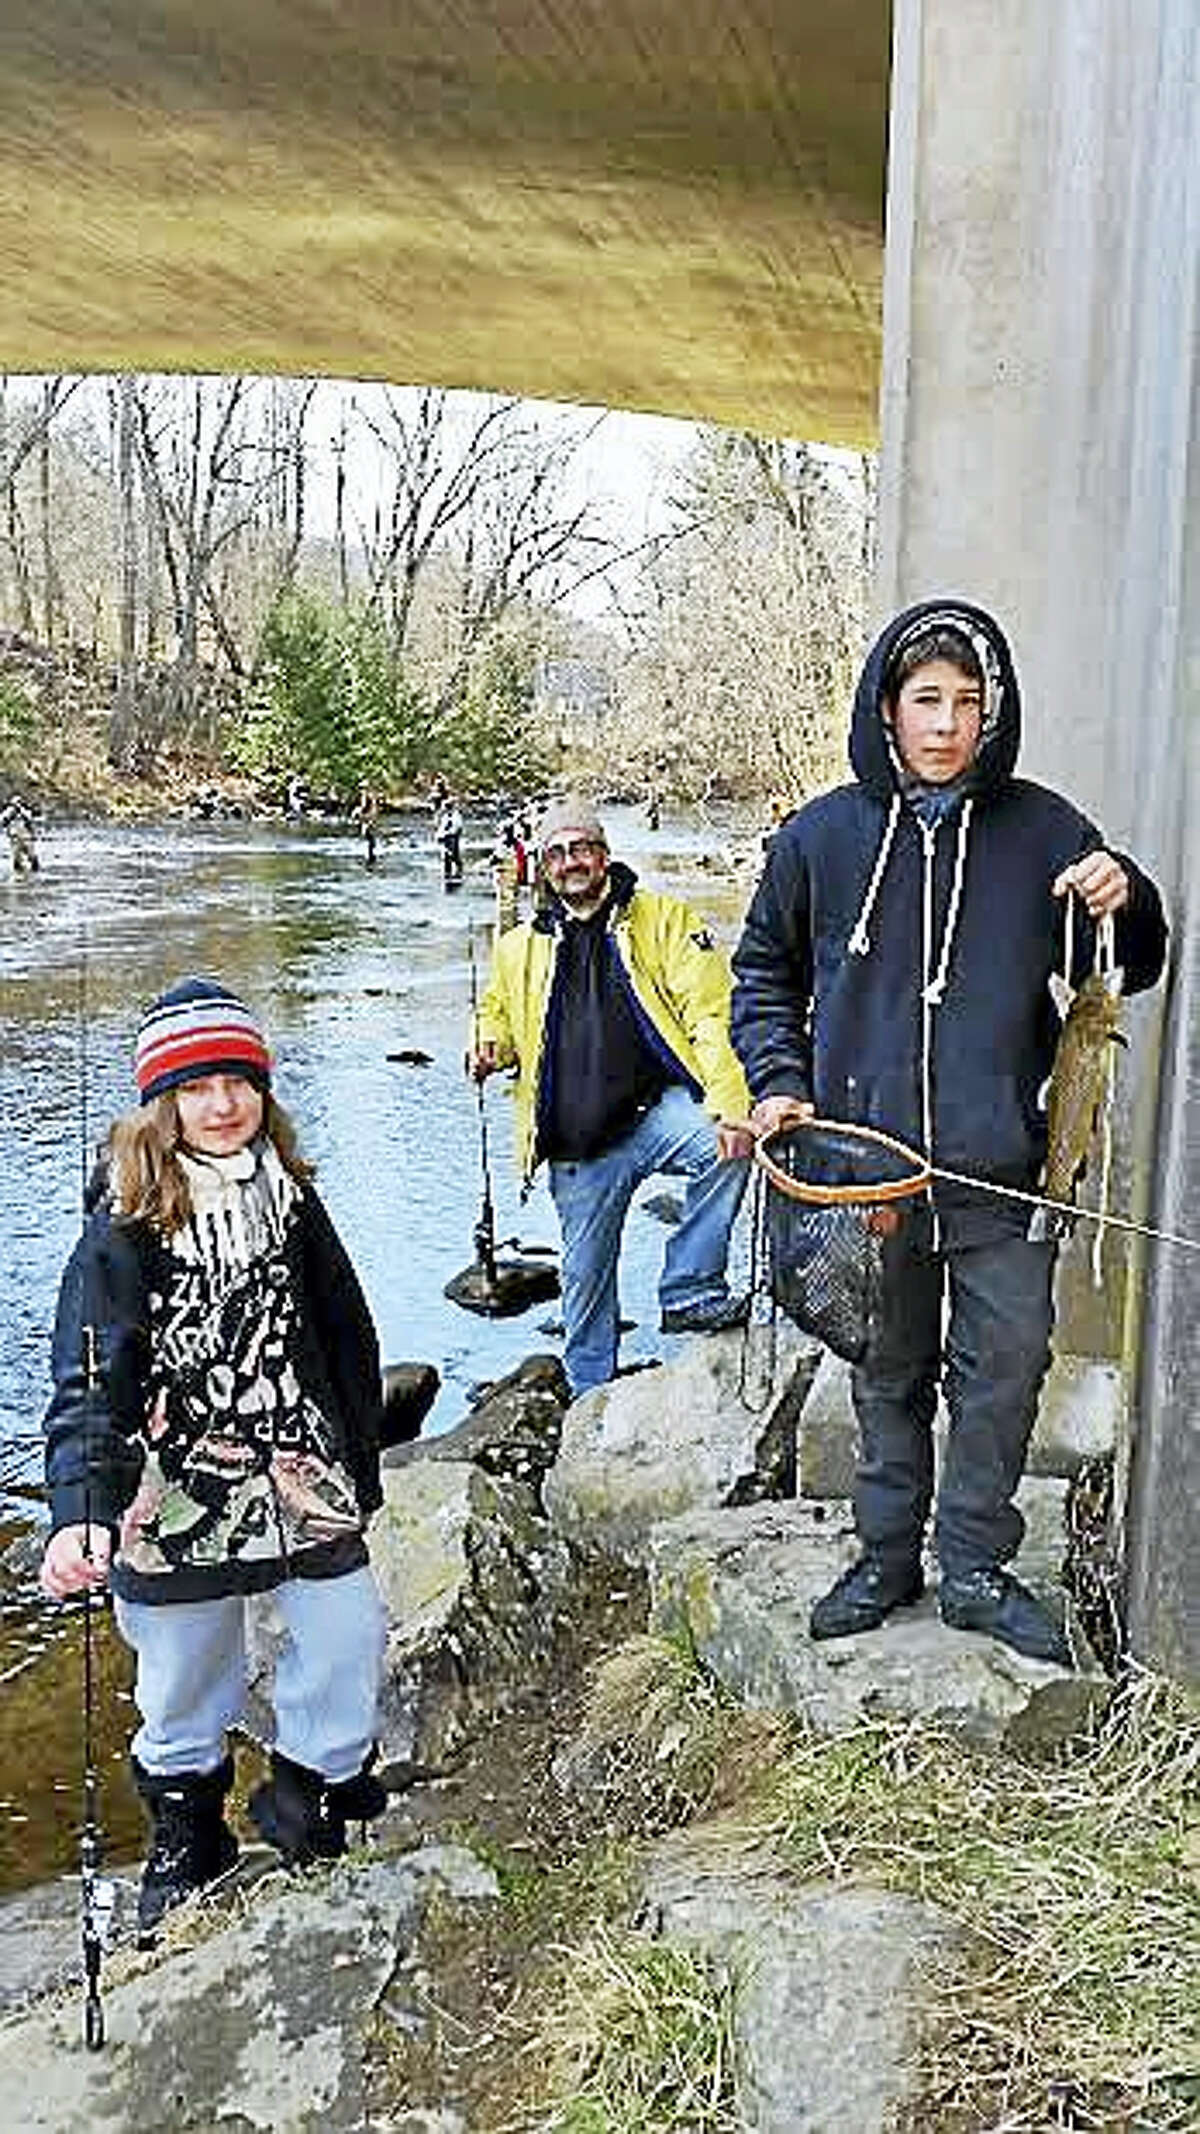 Azyda Lynt, 11, of Terryville; Derek Paplauskas of Terryville; and Robert Valentine, 16, of Waterbury participated in the 67th annual Riverton Fishing Derby on the West branch of the Farmington River near the Old Riverton Inn at 436 E. River Road in Riverton Saturday.